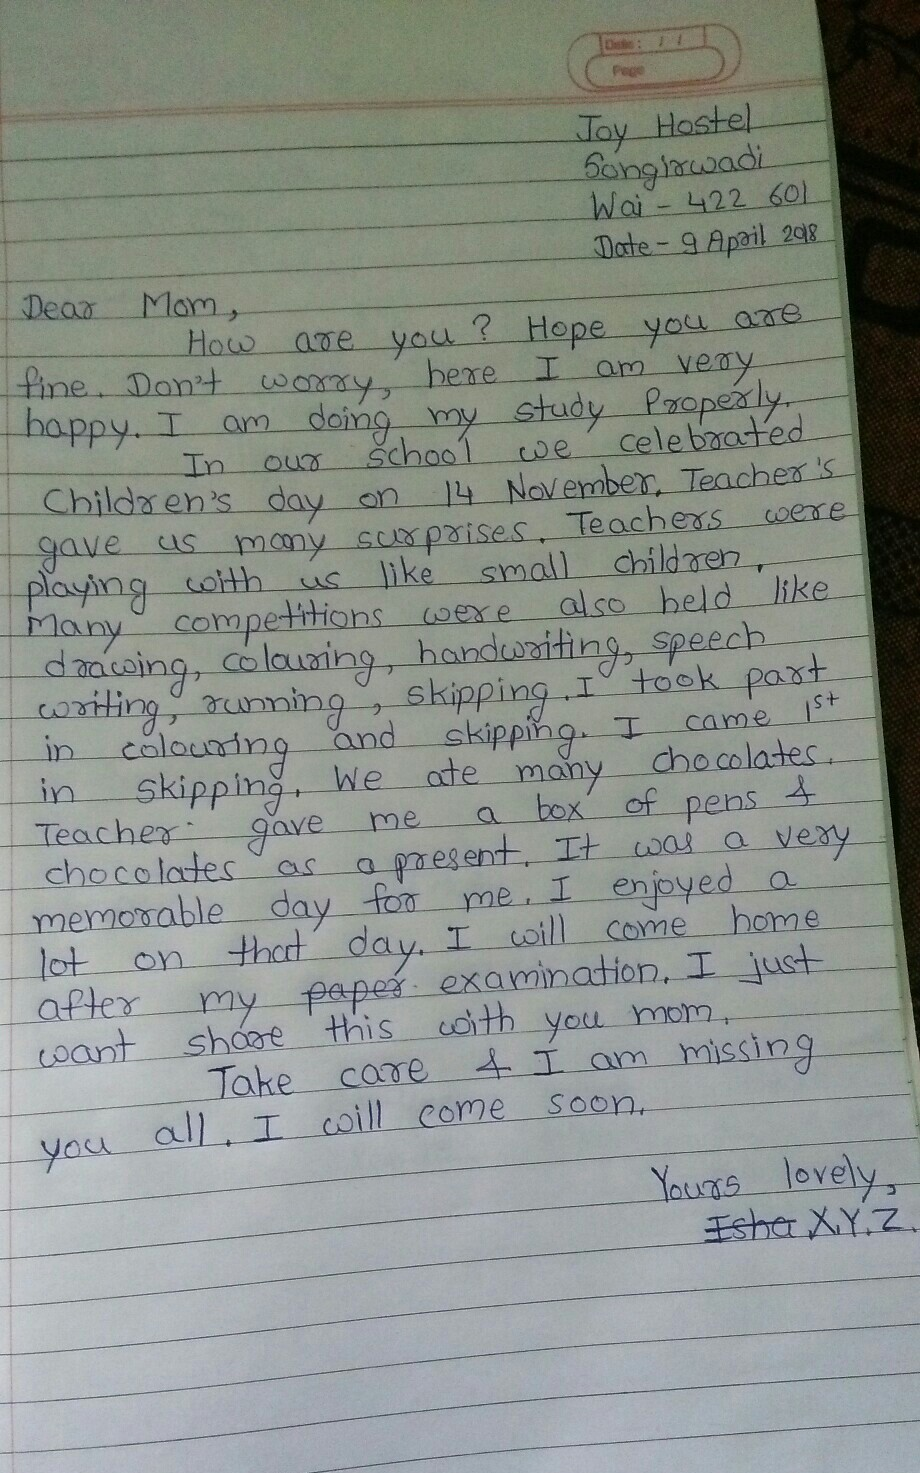 6b71f614e89 Write a letter to your mother describing how celebrated the children ...